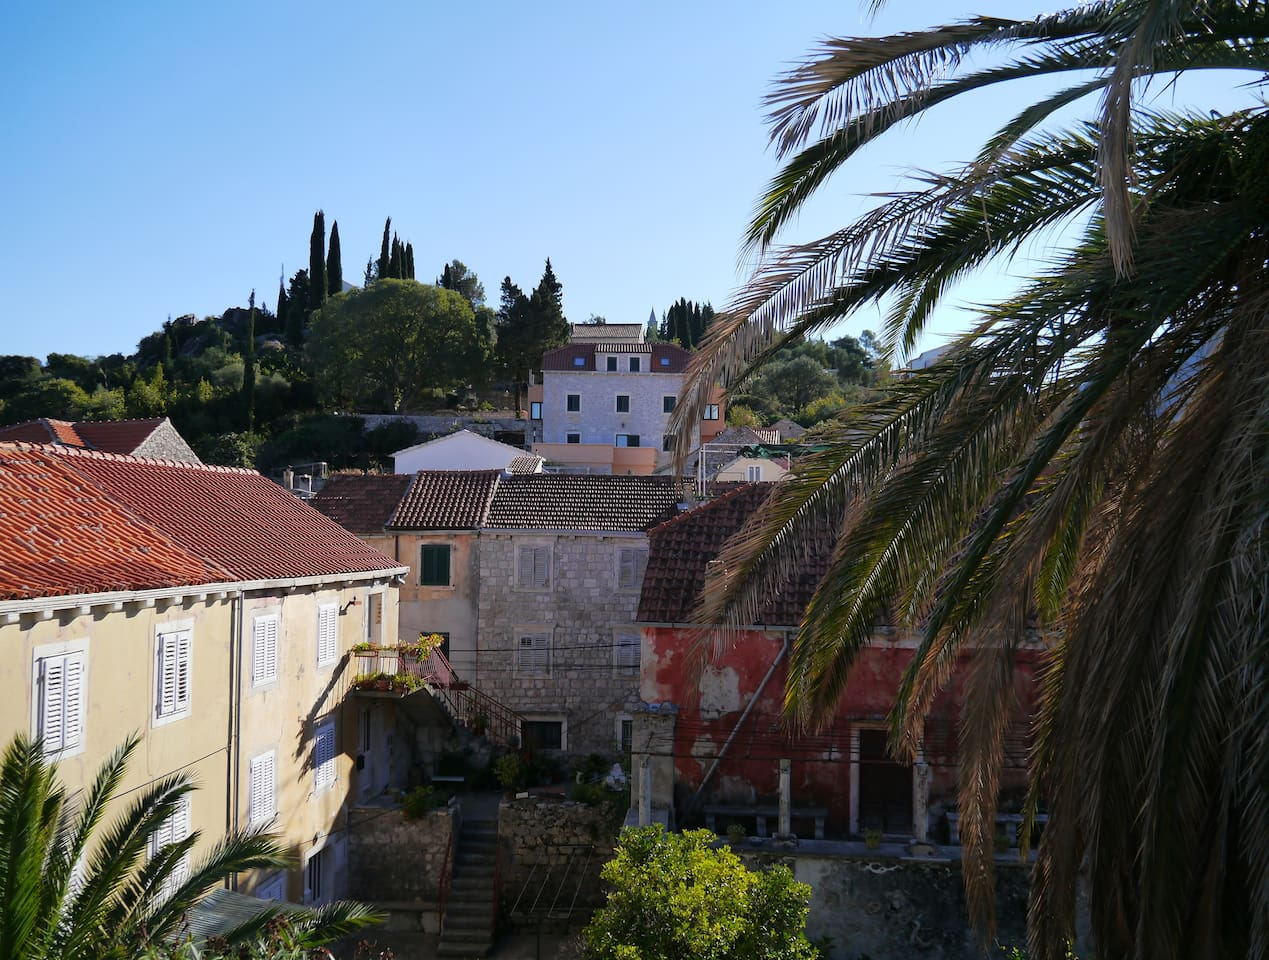 Stunning rooftop views over the charming old town to the hilltop churches of Sveti Rocka and Sveti Nikola.